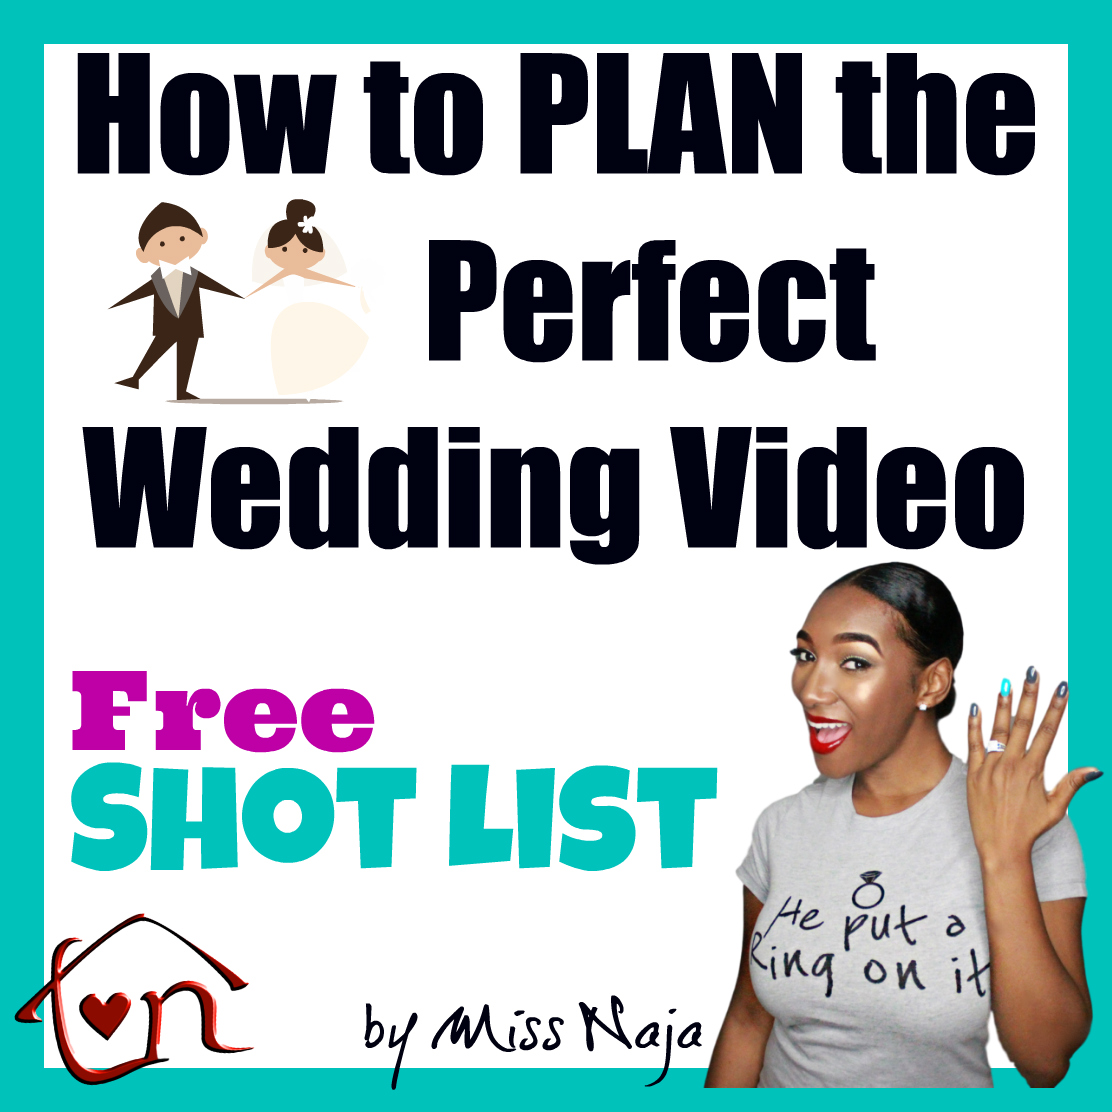 How to plan the PERFECT Wedding Video